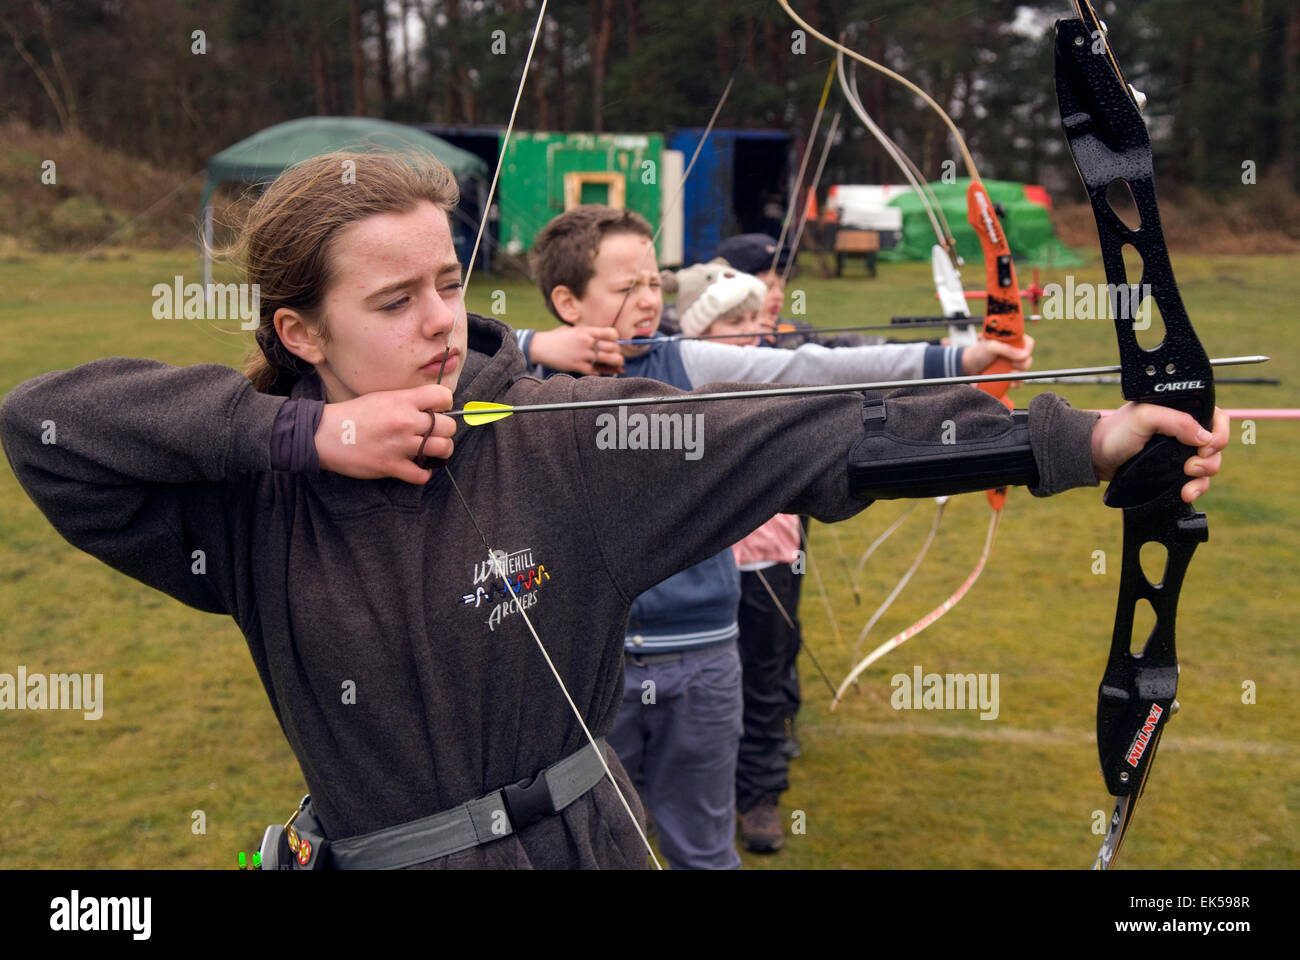 Children in the Under 14 age category take aim in an annual summer archery shoot, Whitehill, Bordon, Hampshire, Stock Photo